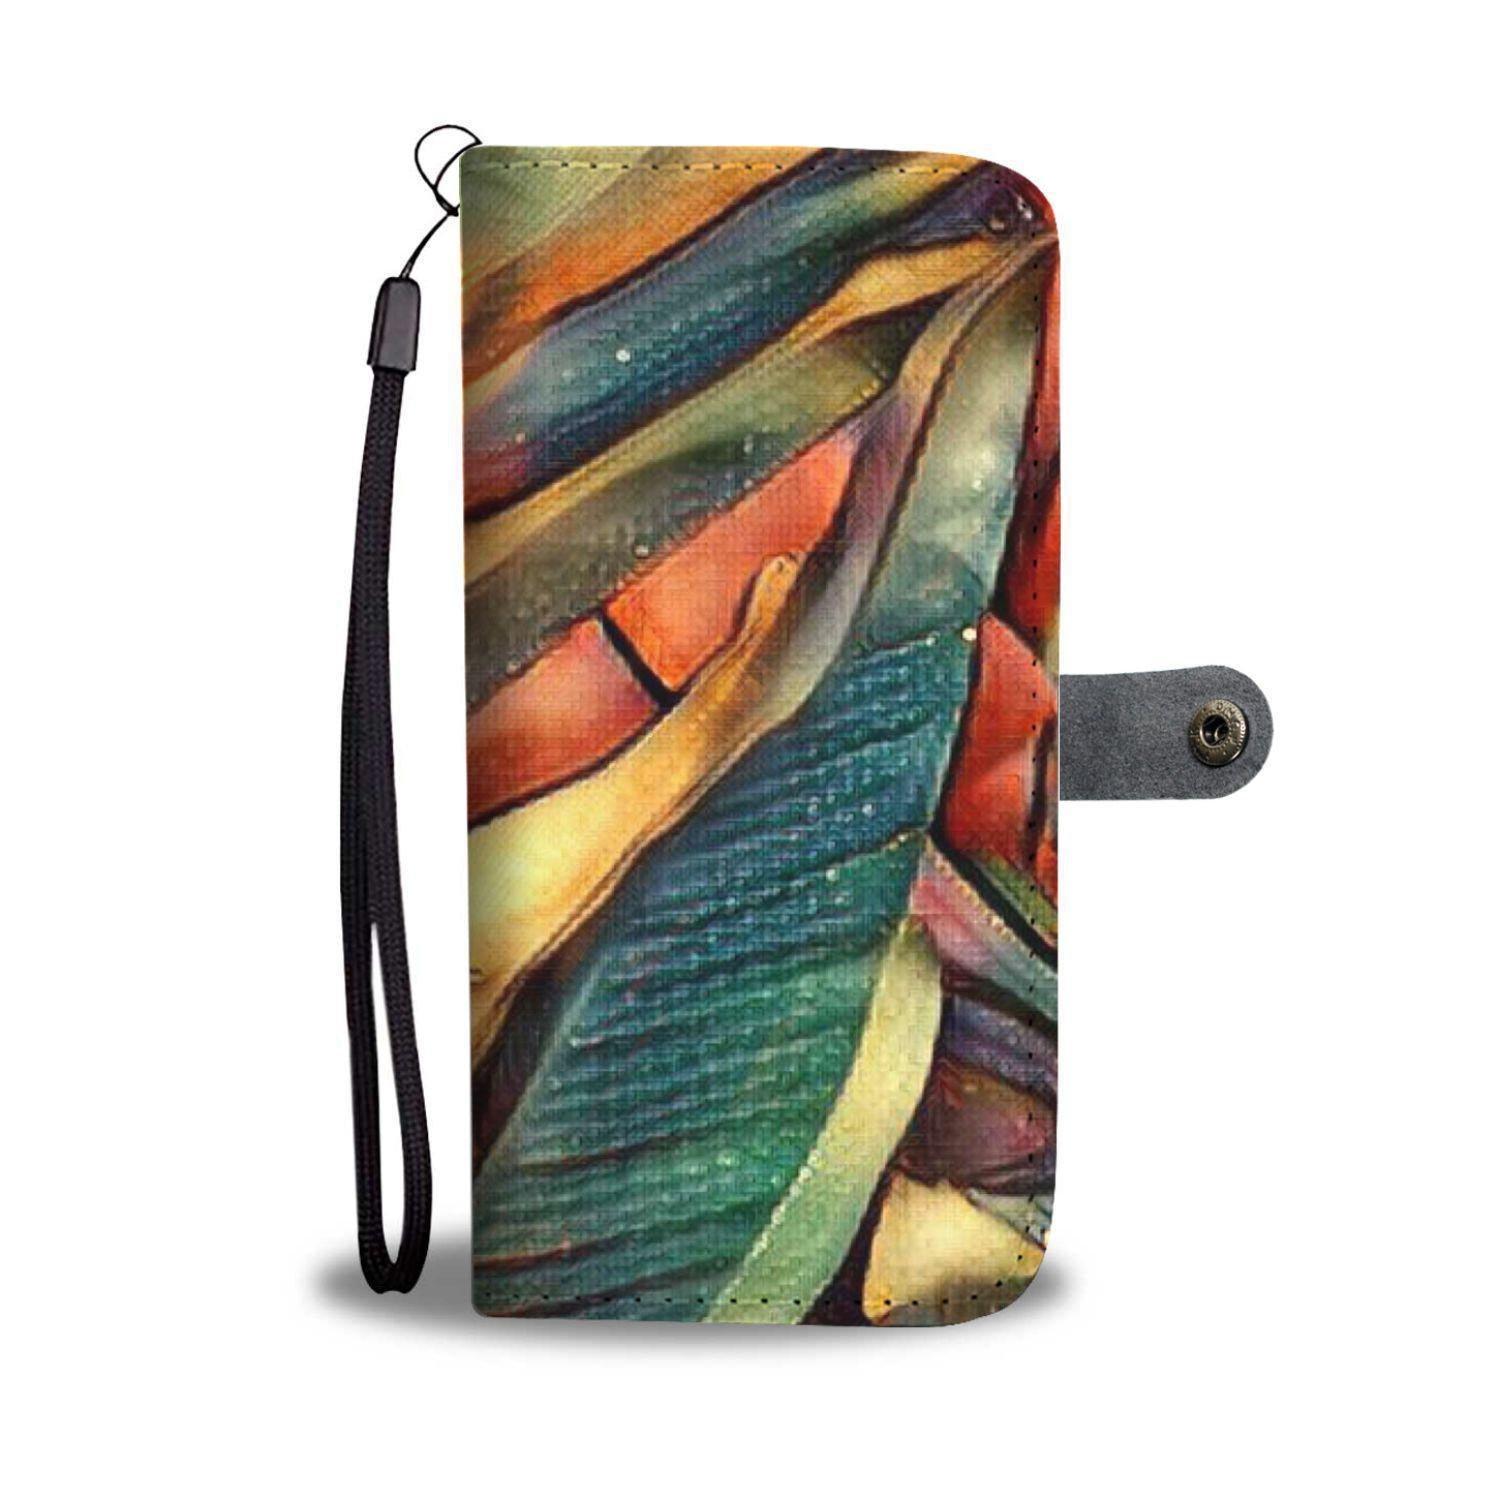 I Love My Wallet 3 - Wallet Phone Case_artist-Carlo-Bressan_Breathing-Wellness